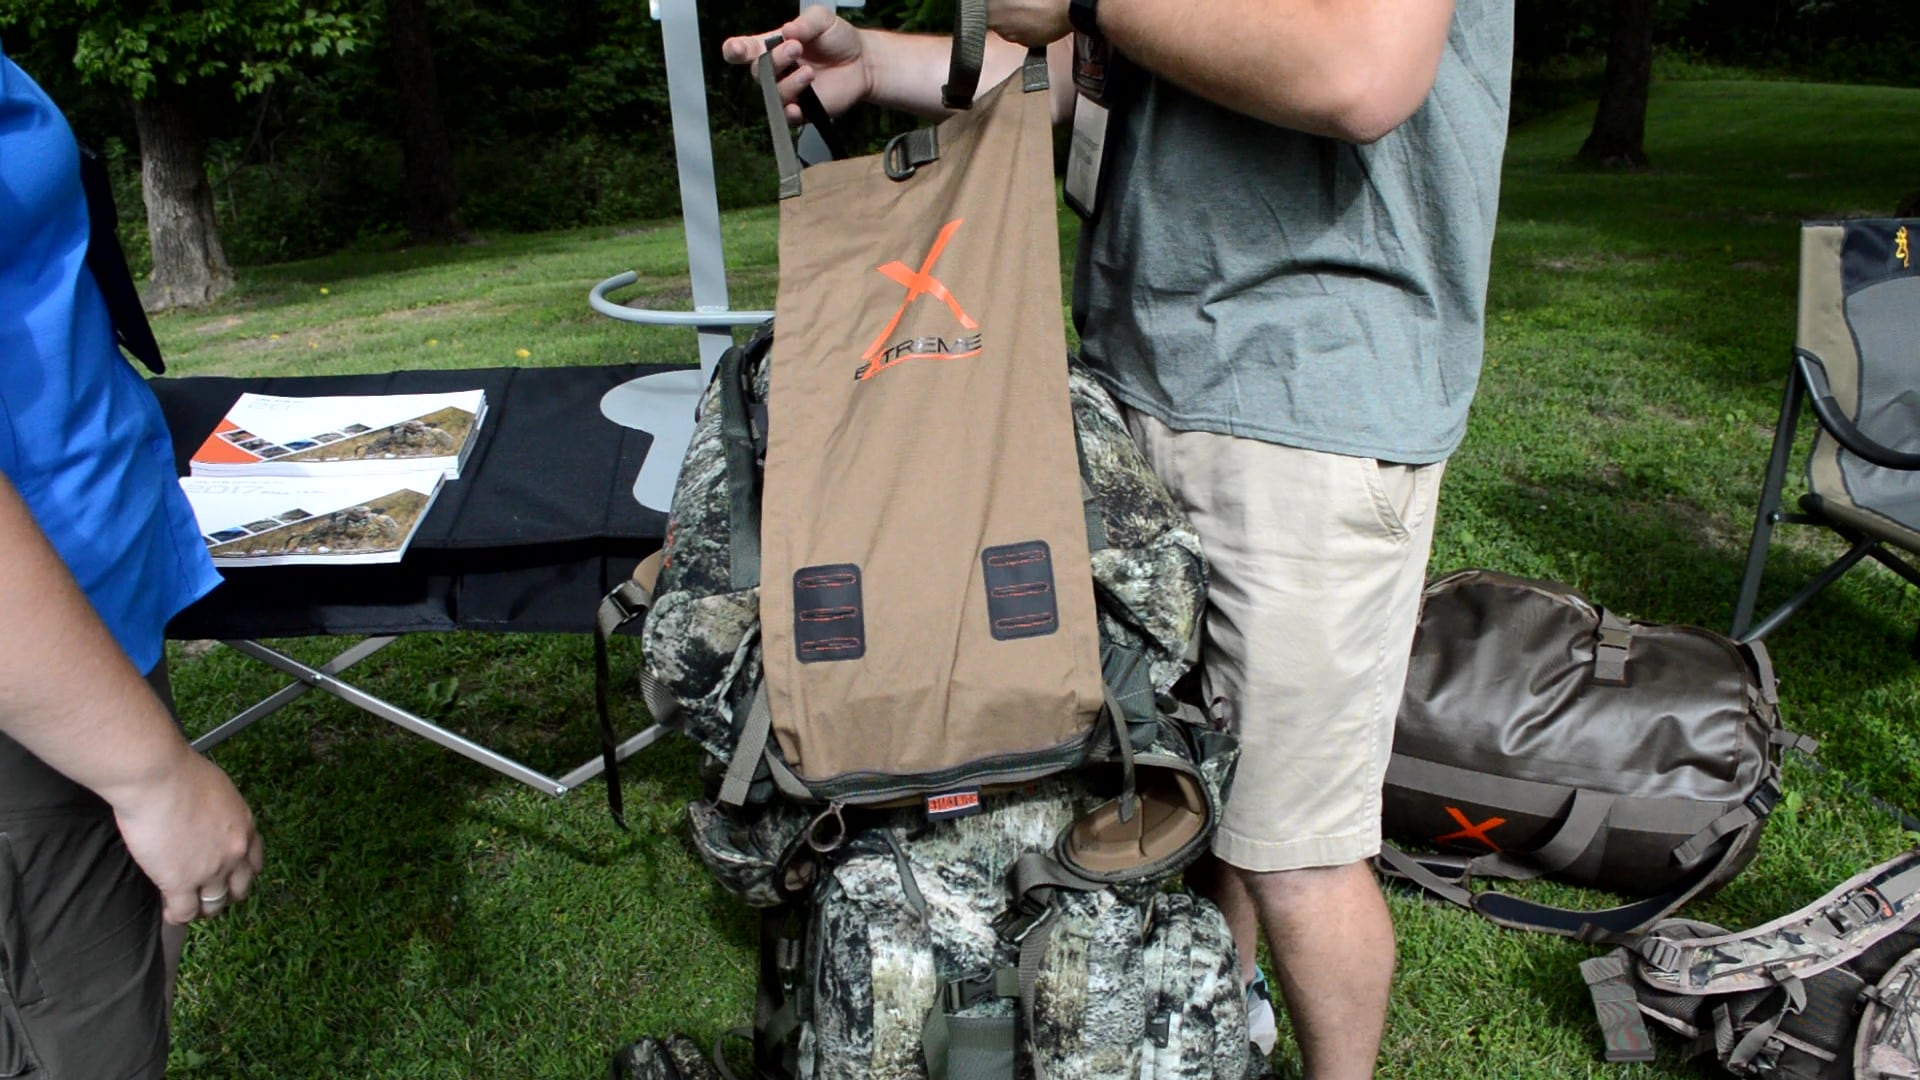 Here we see the built-in, stowaway meat shelf which pulls out from the bottom of the pack. Hunters can easily tuck several quarters of big game behind this shelf, while the pack's side wings flare out to lash down the load. (Photo: Kristin Alberts)